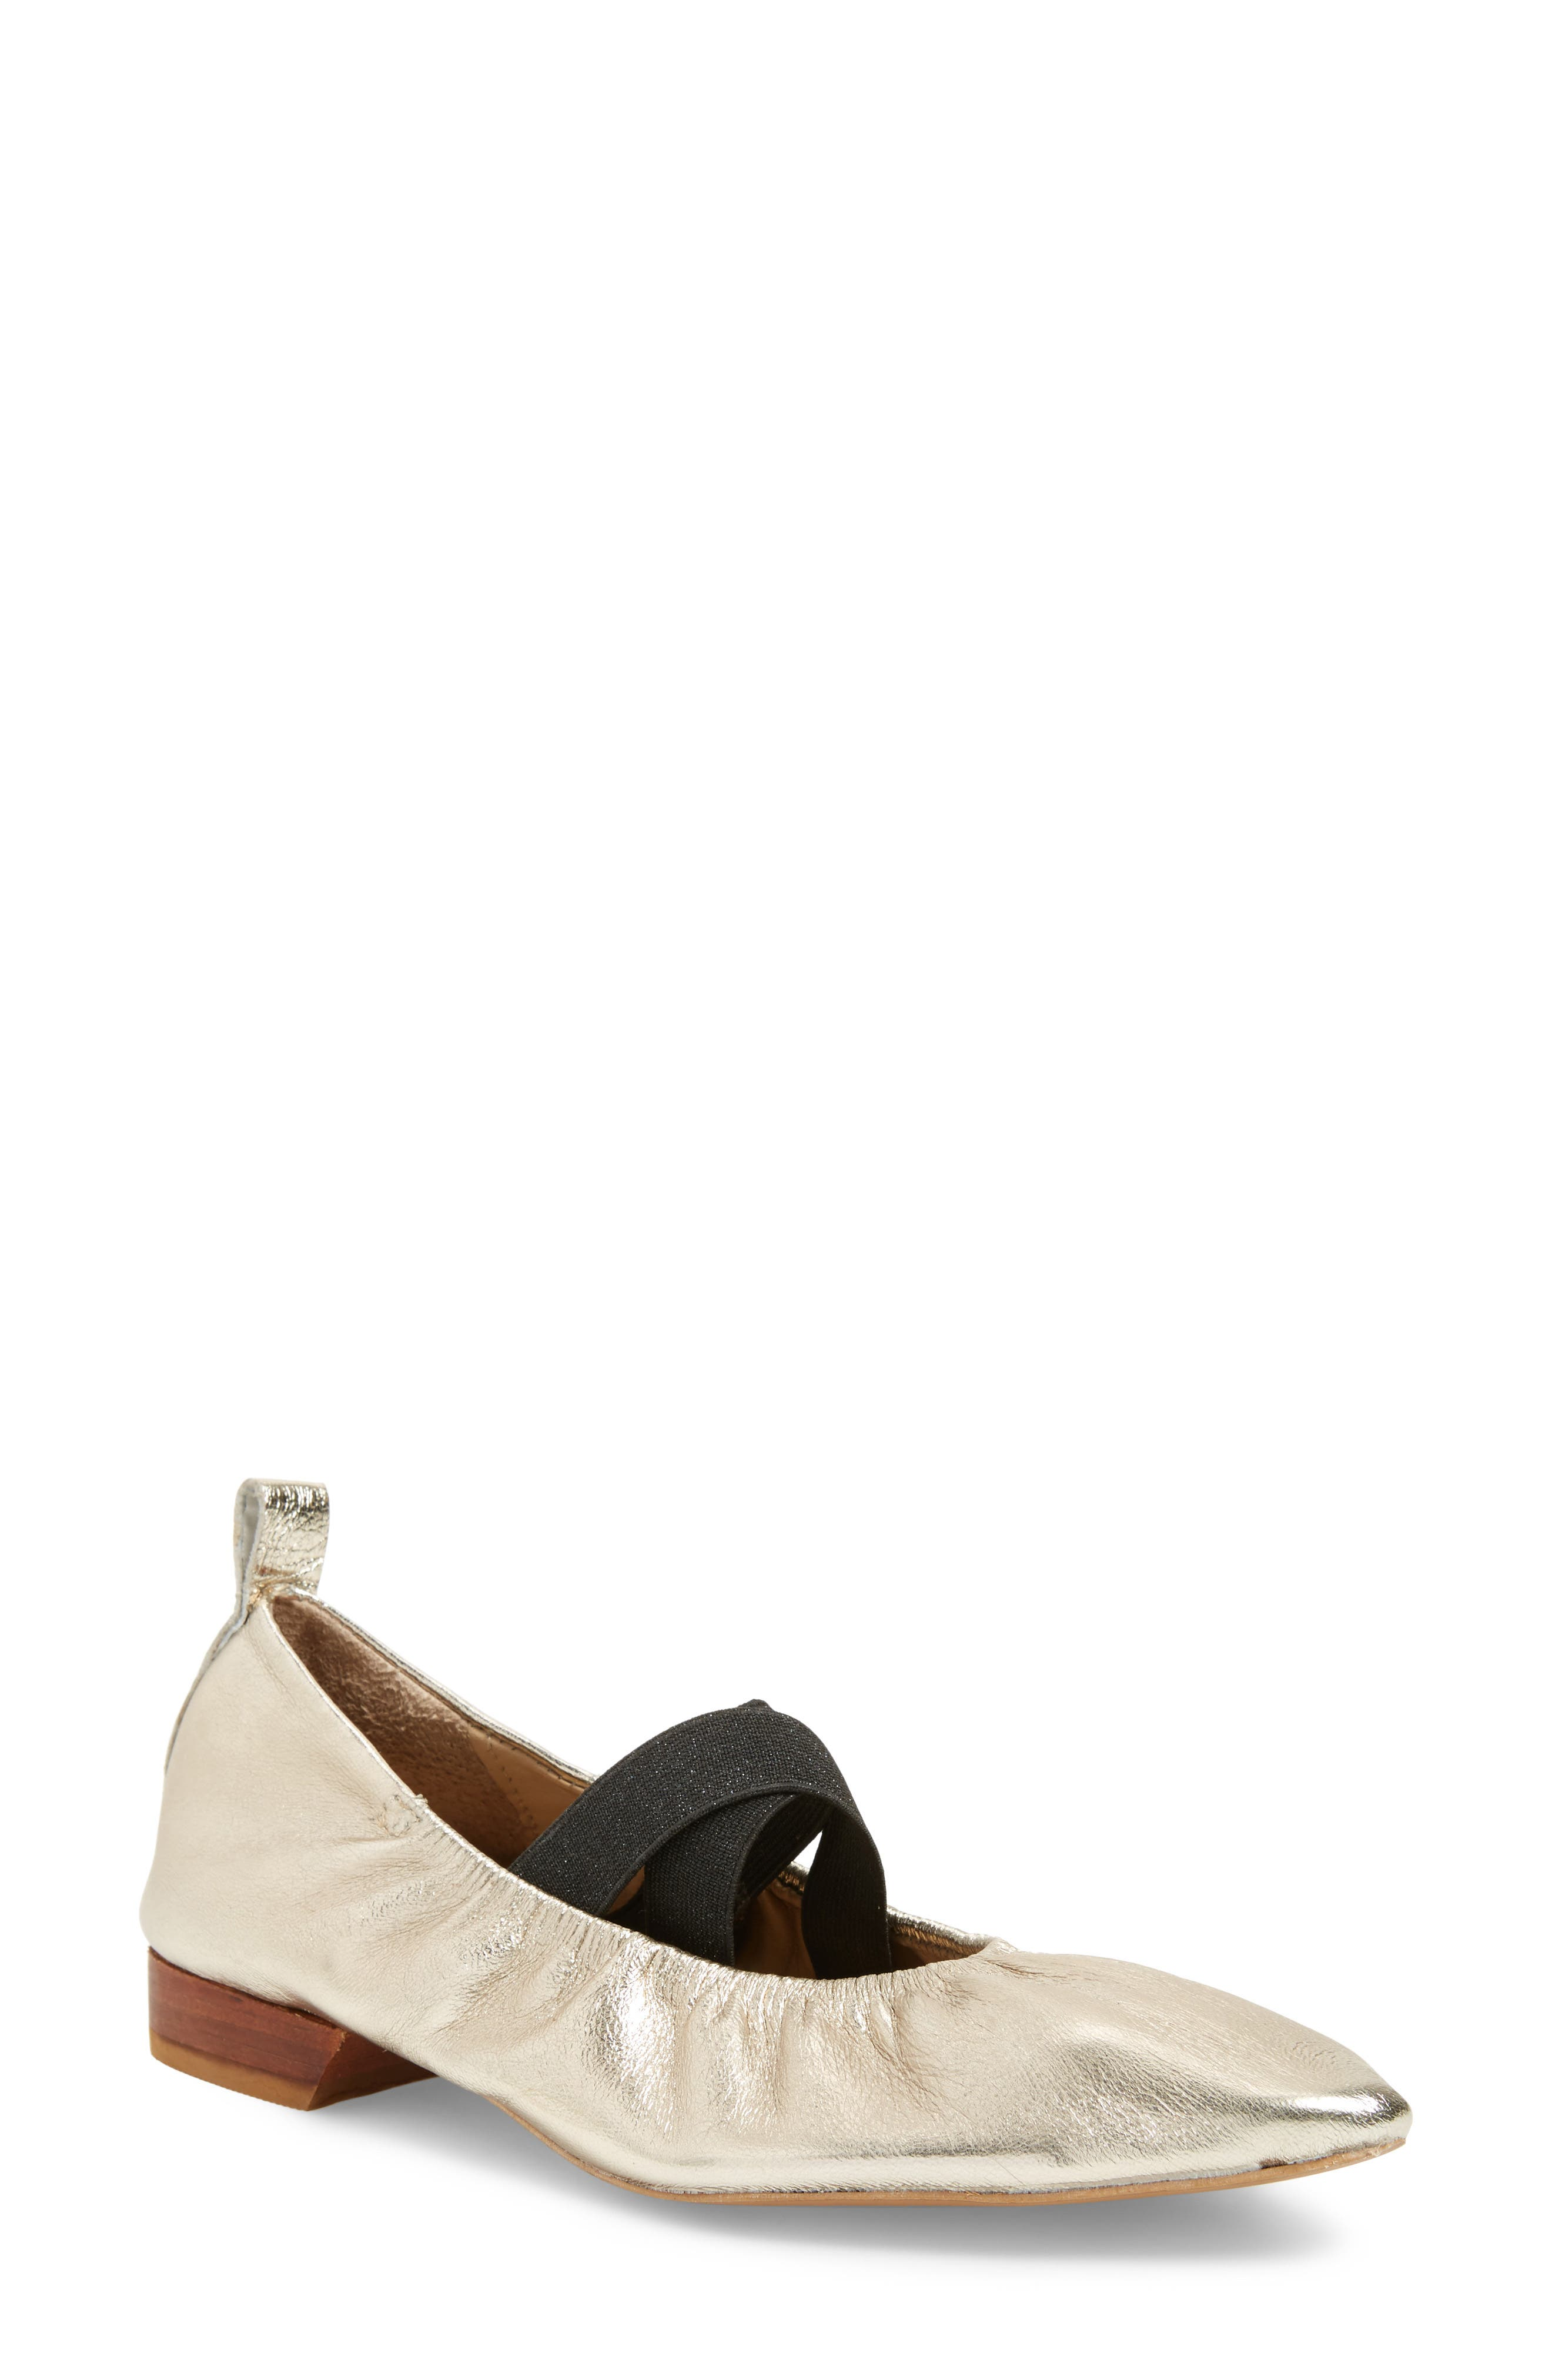 Free People Solitaire Flat (Women)